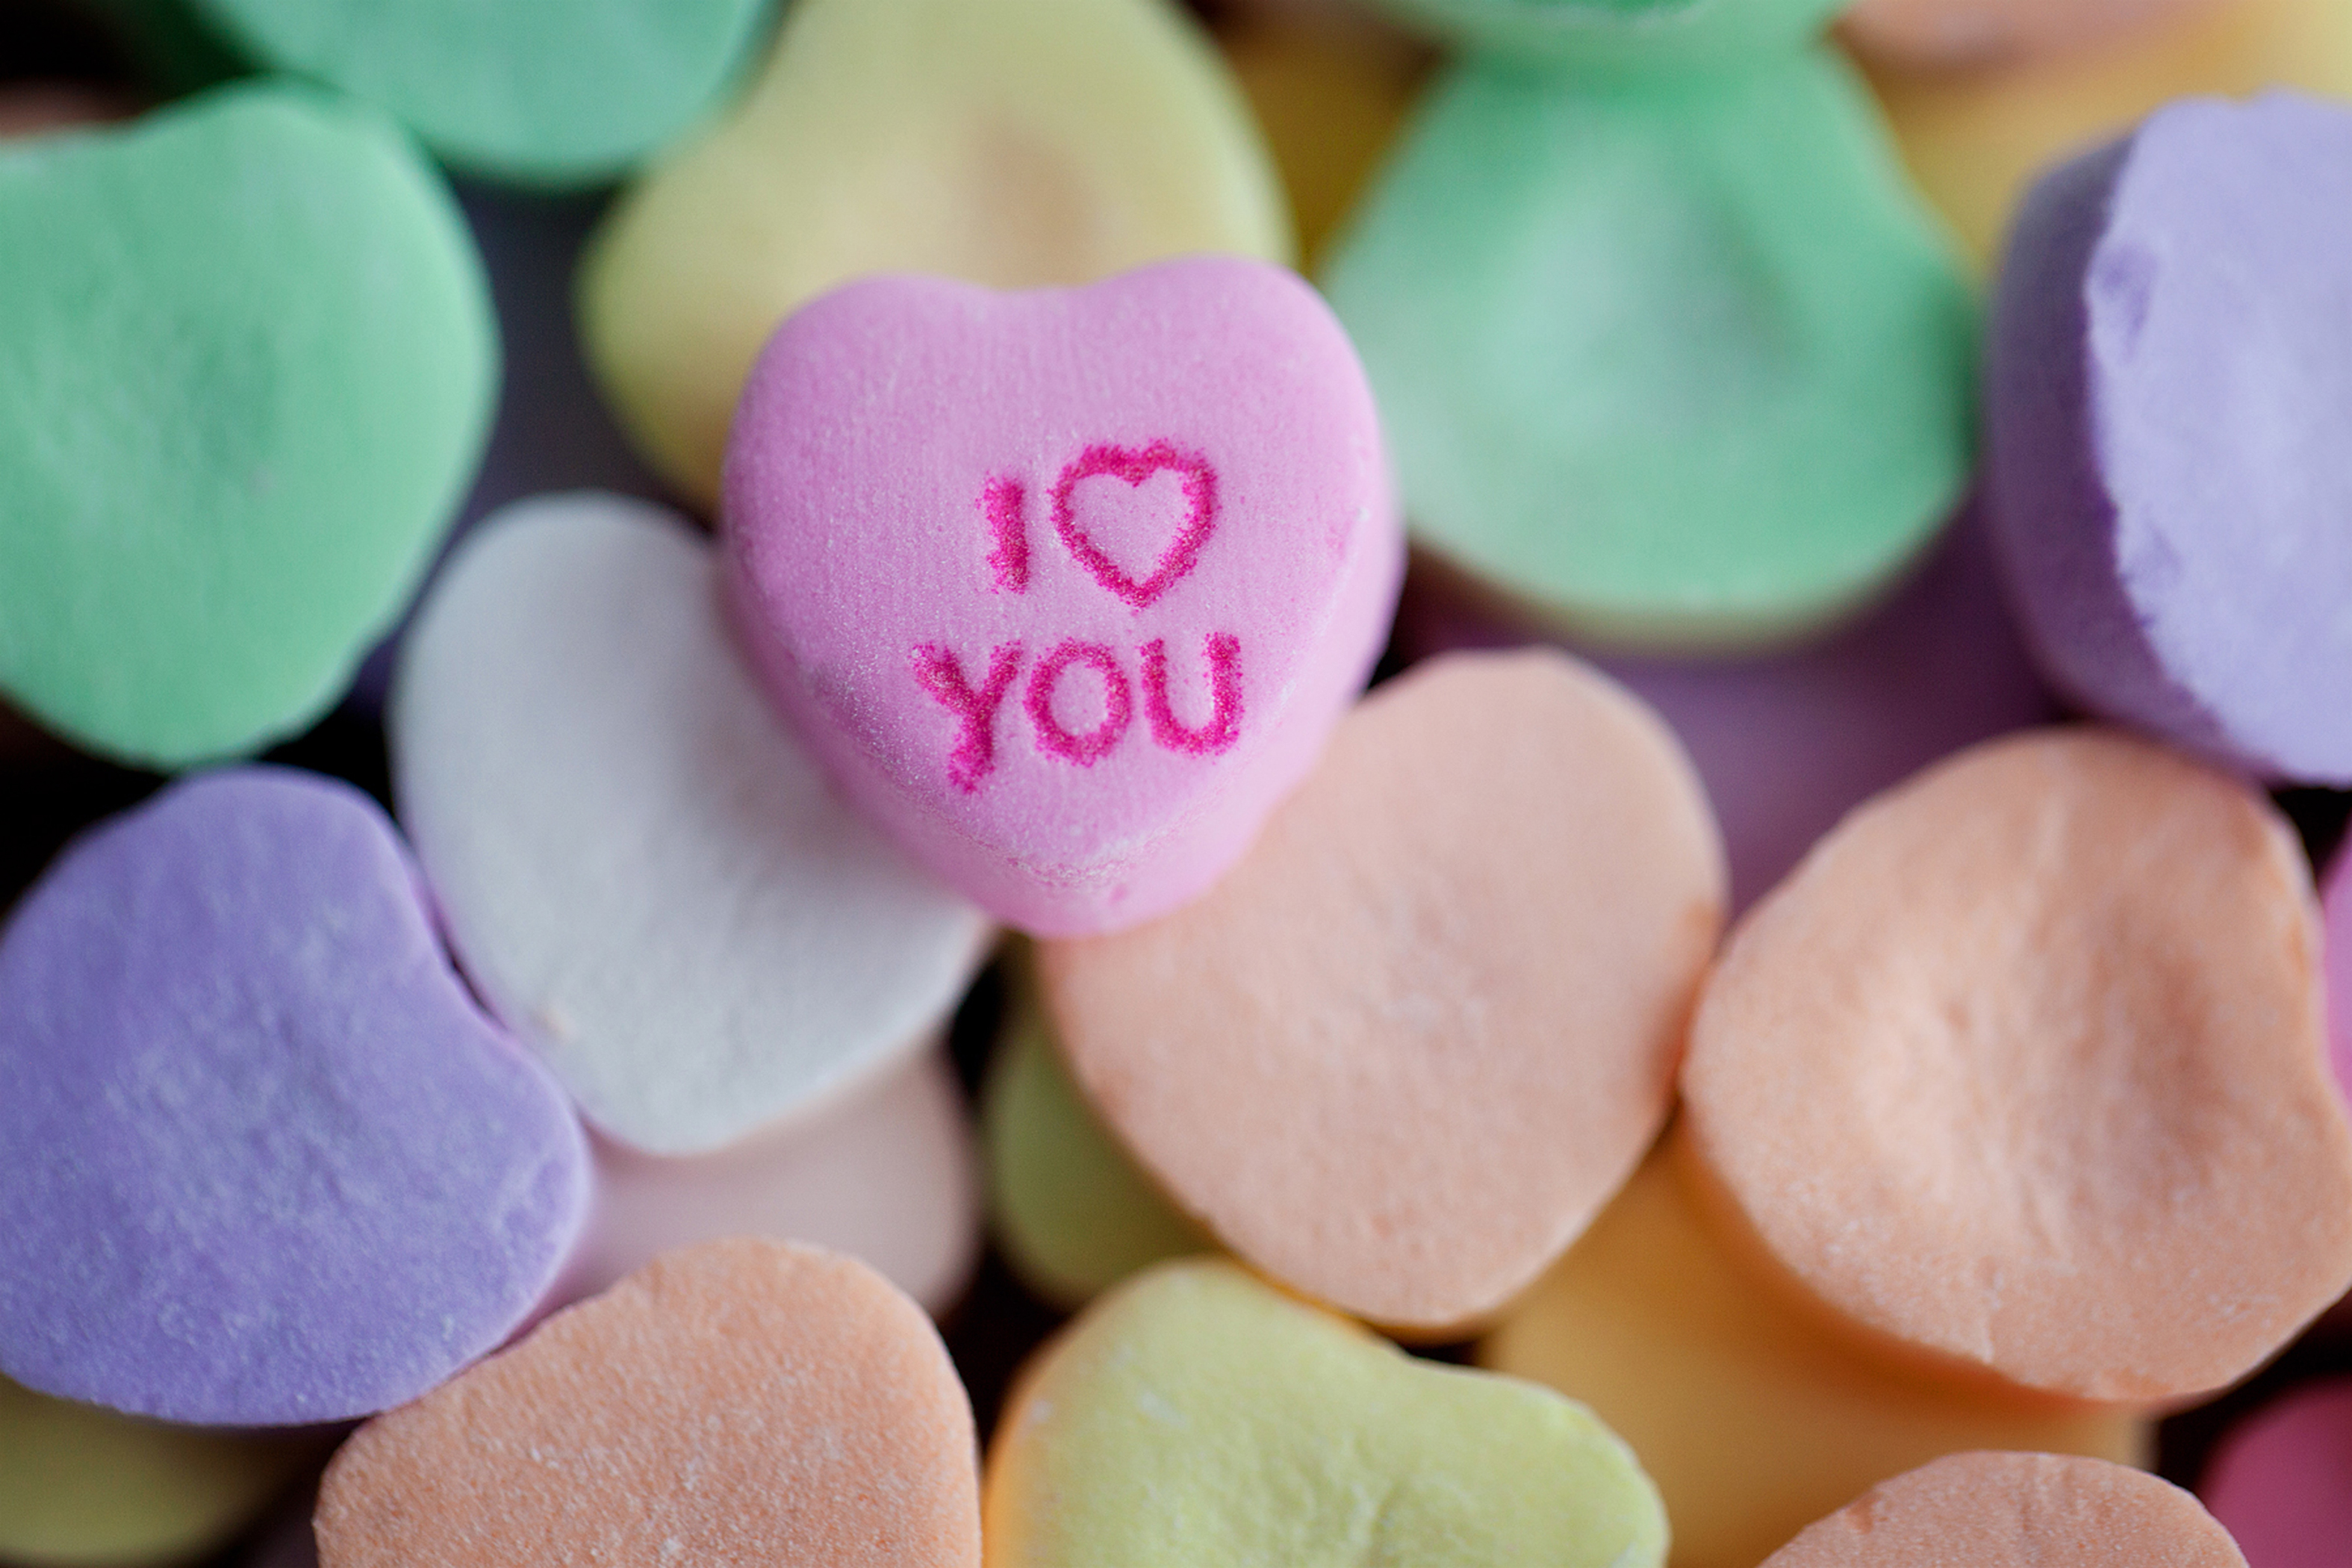 Your fave candy hearts won't be available this Valentine's Day, so you'll have to be a little more direct with your crush